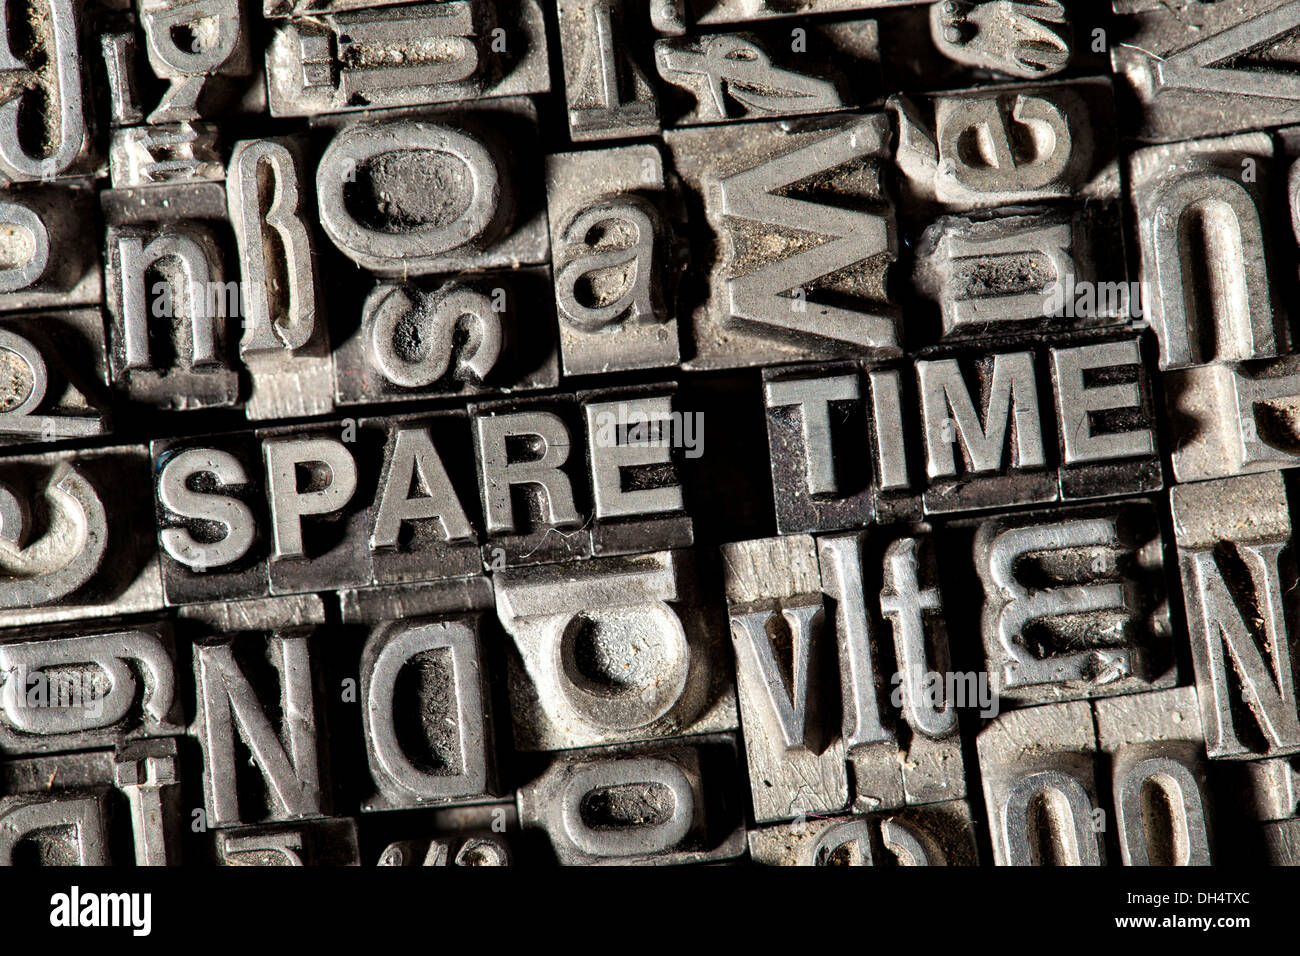 Old lead letters forming the term 'SPARE TIME' - Stock Image